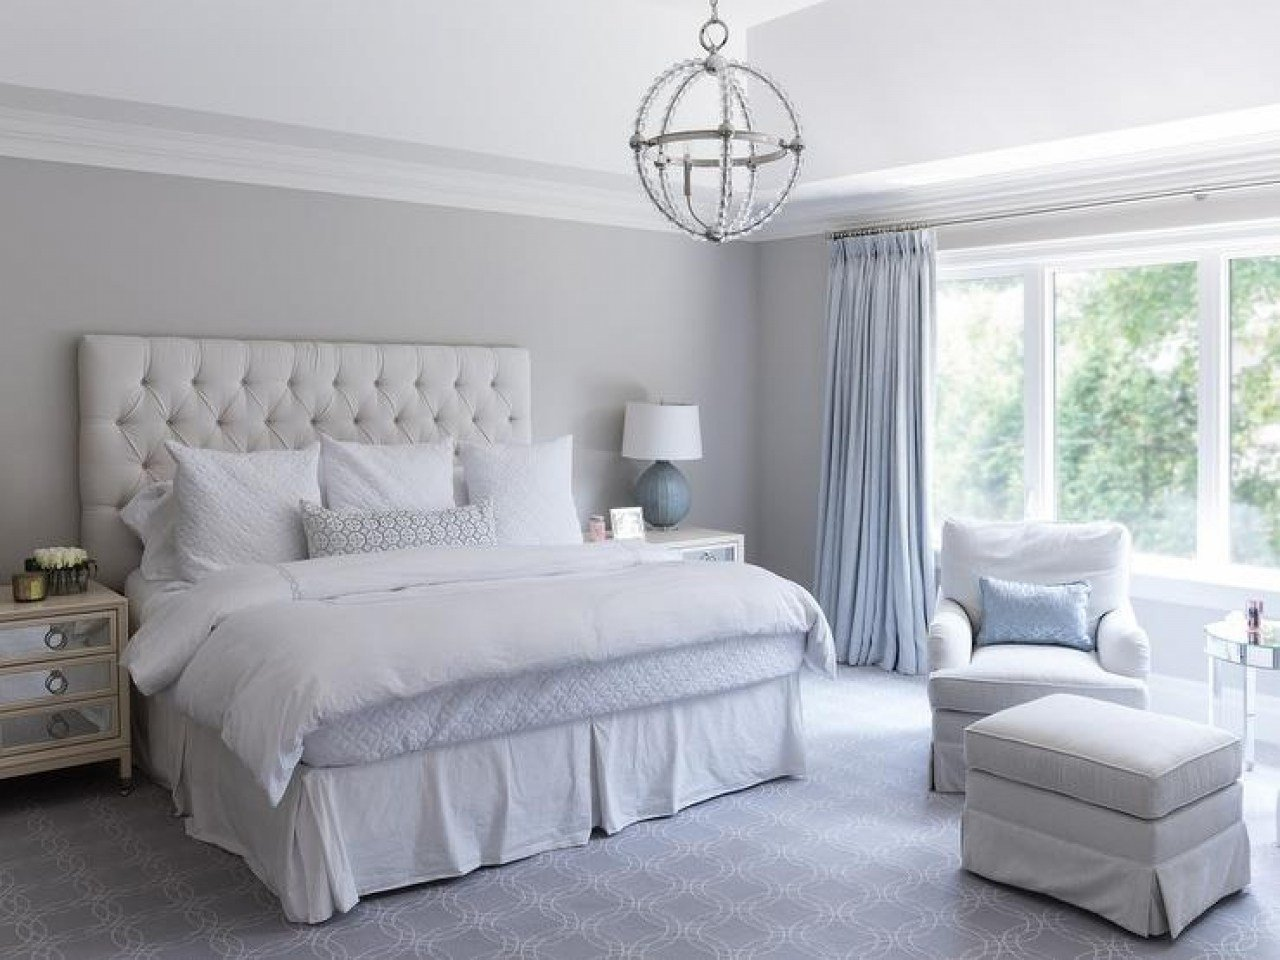 Best Cornflower Blue And White Bedroom Curtains Designs With Pictures